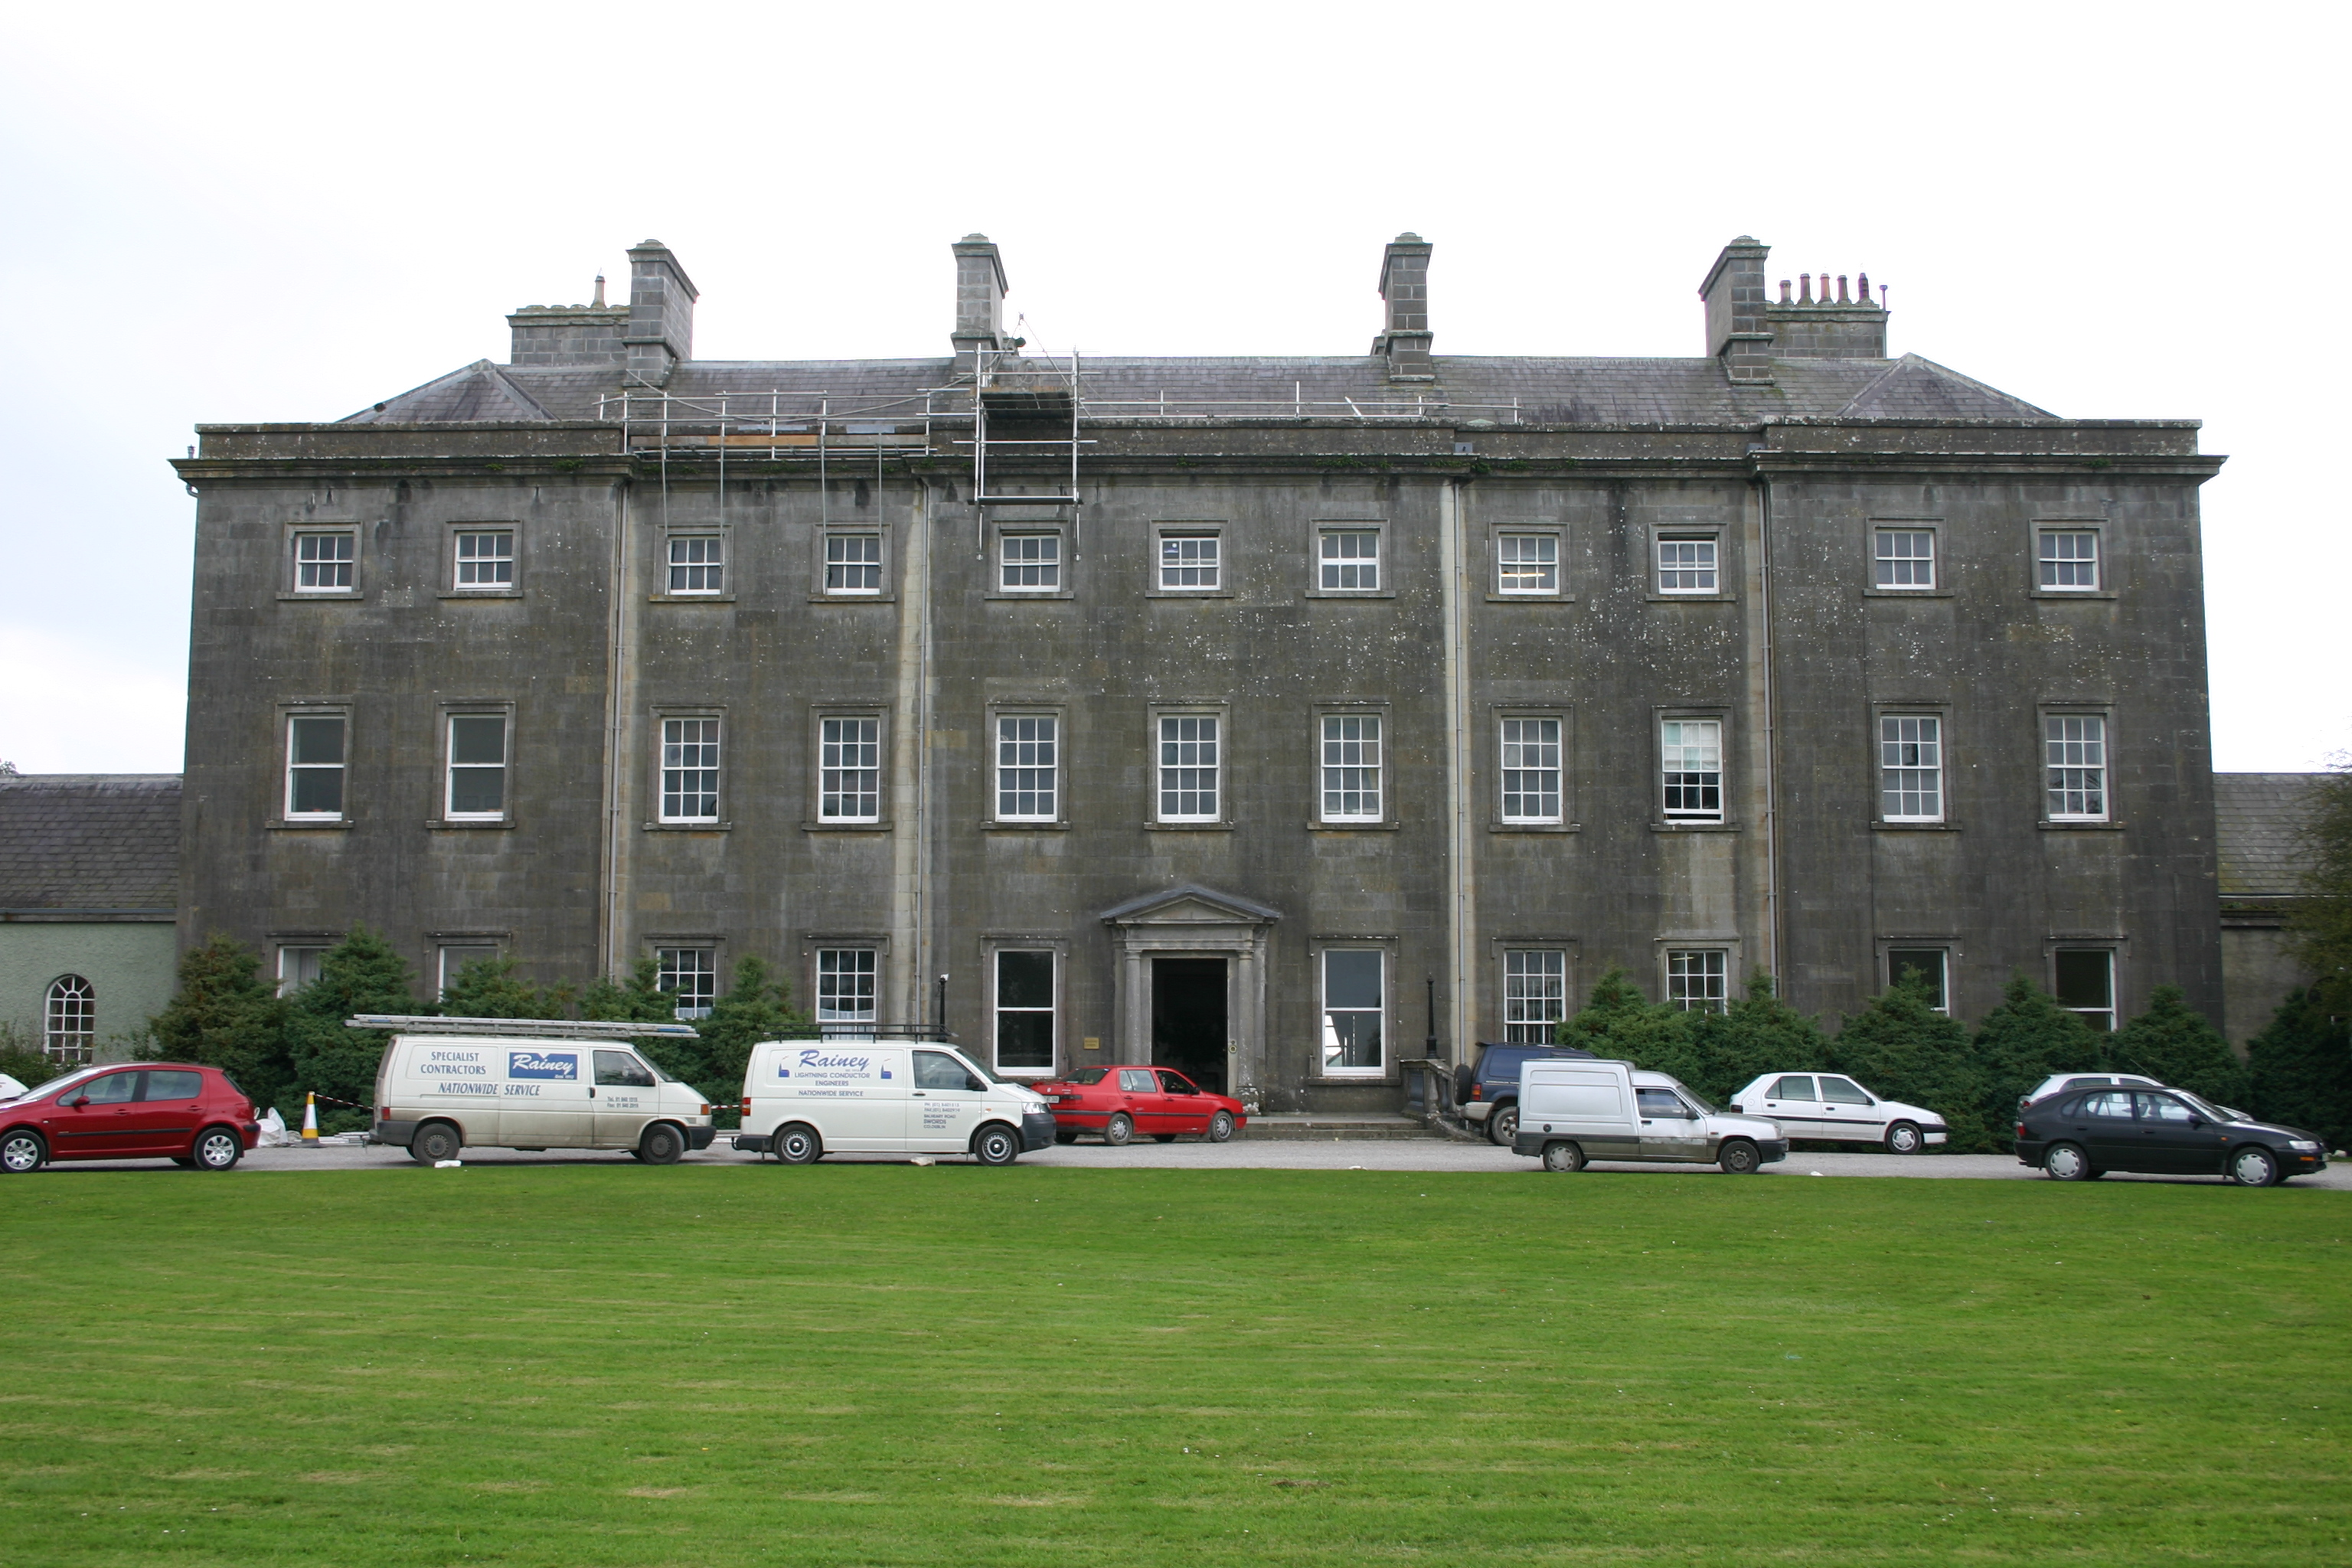 Headfort is one of Ireland's most important eighteenth century buildings